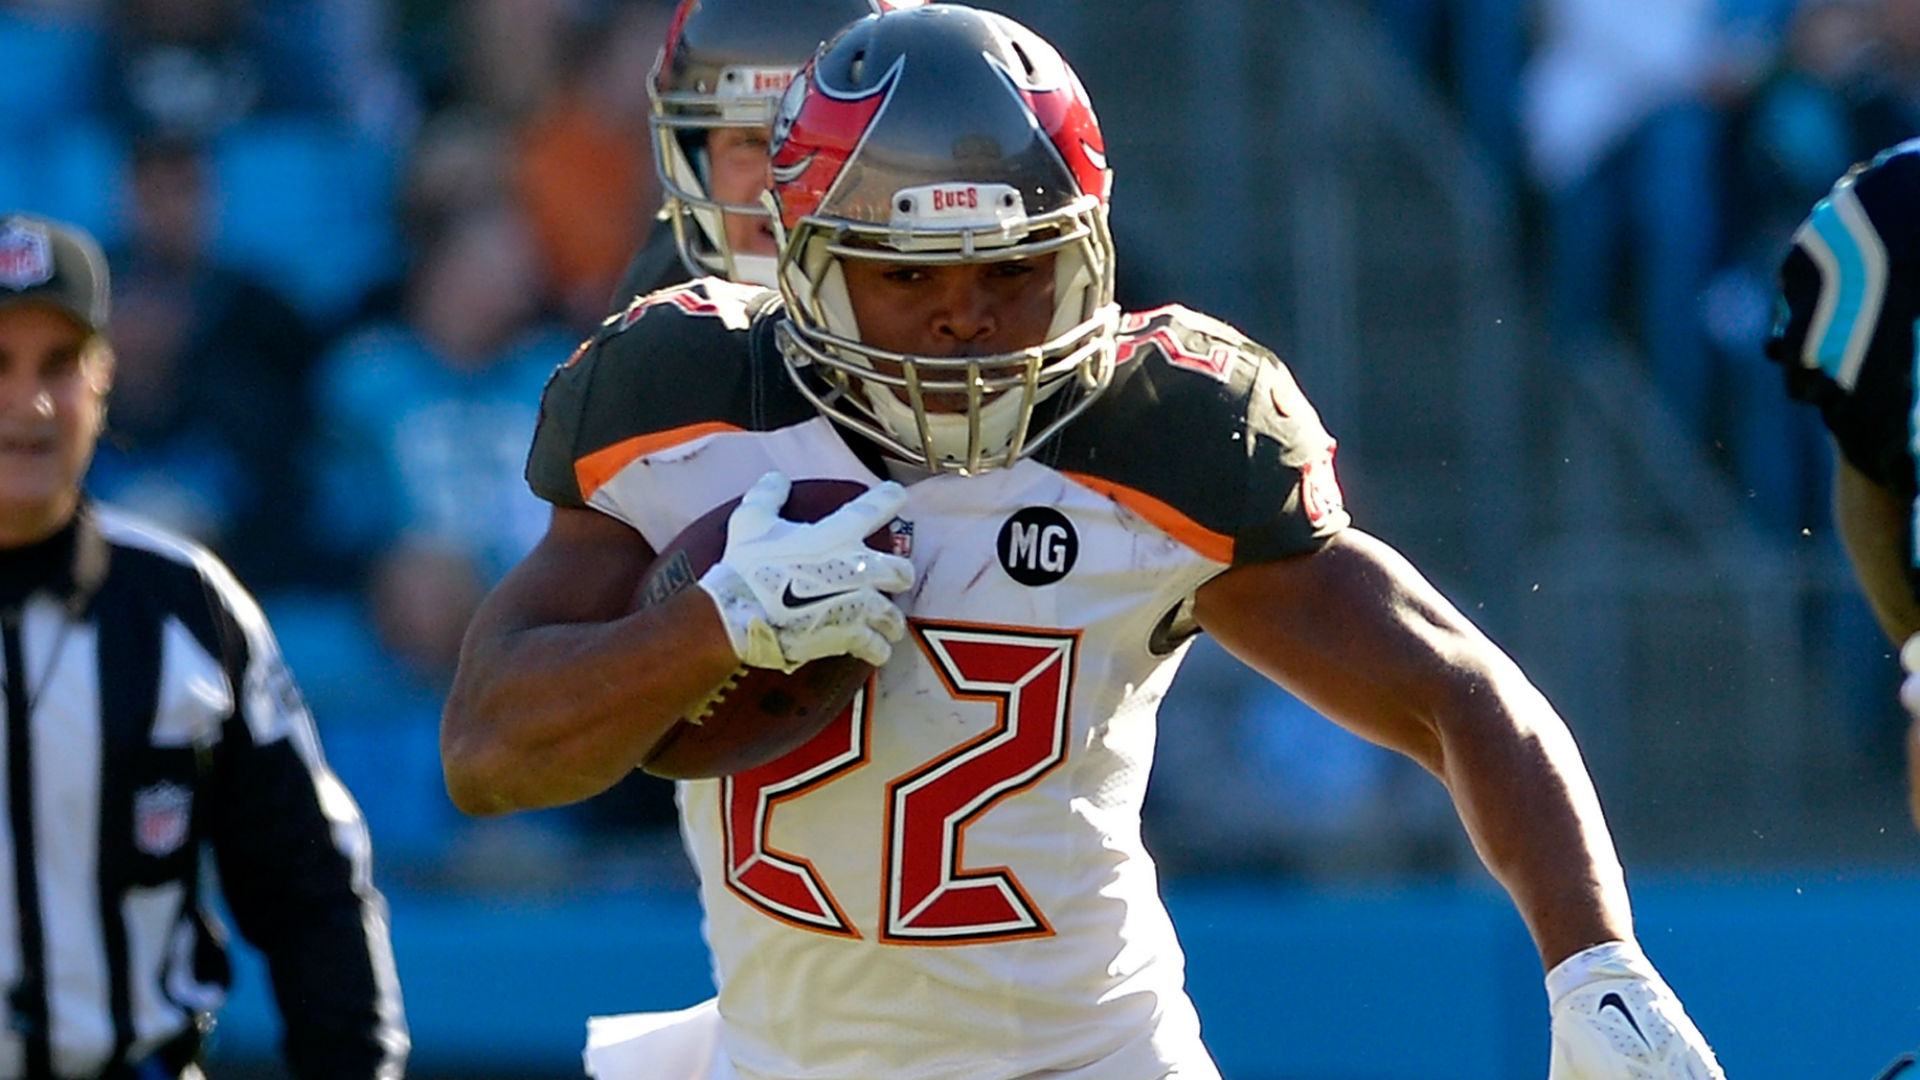 Lovie Smith confirms Doug Martin is Bucs' No. 1 running back